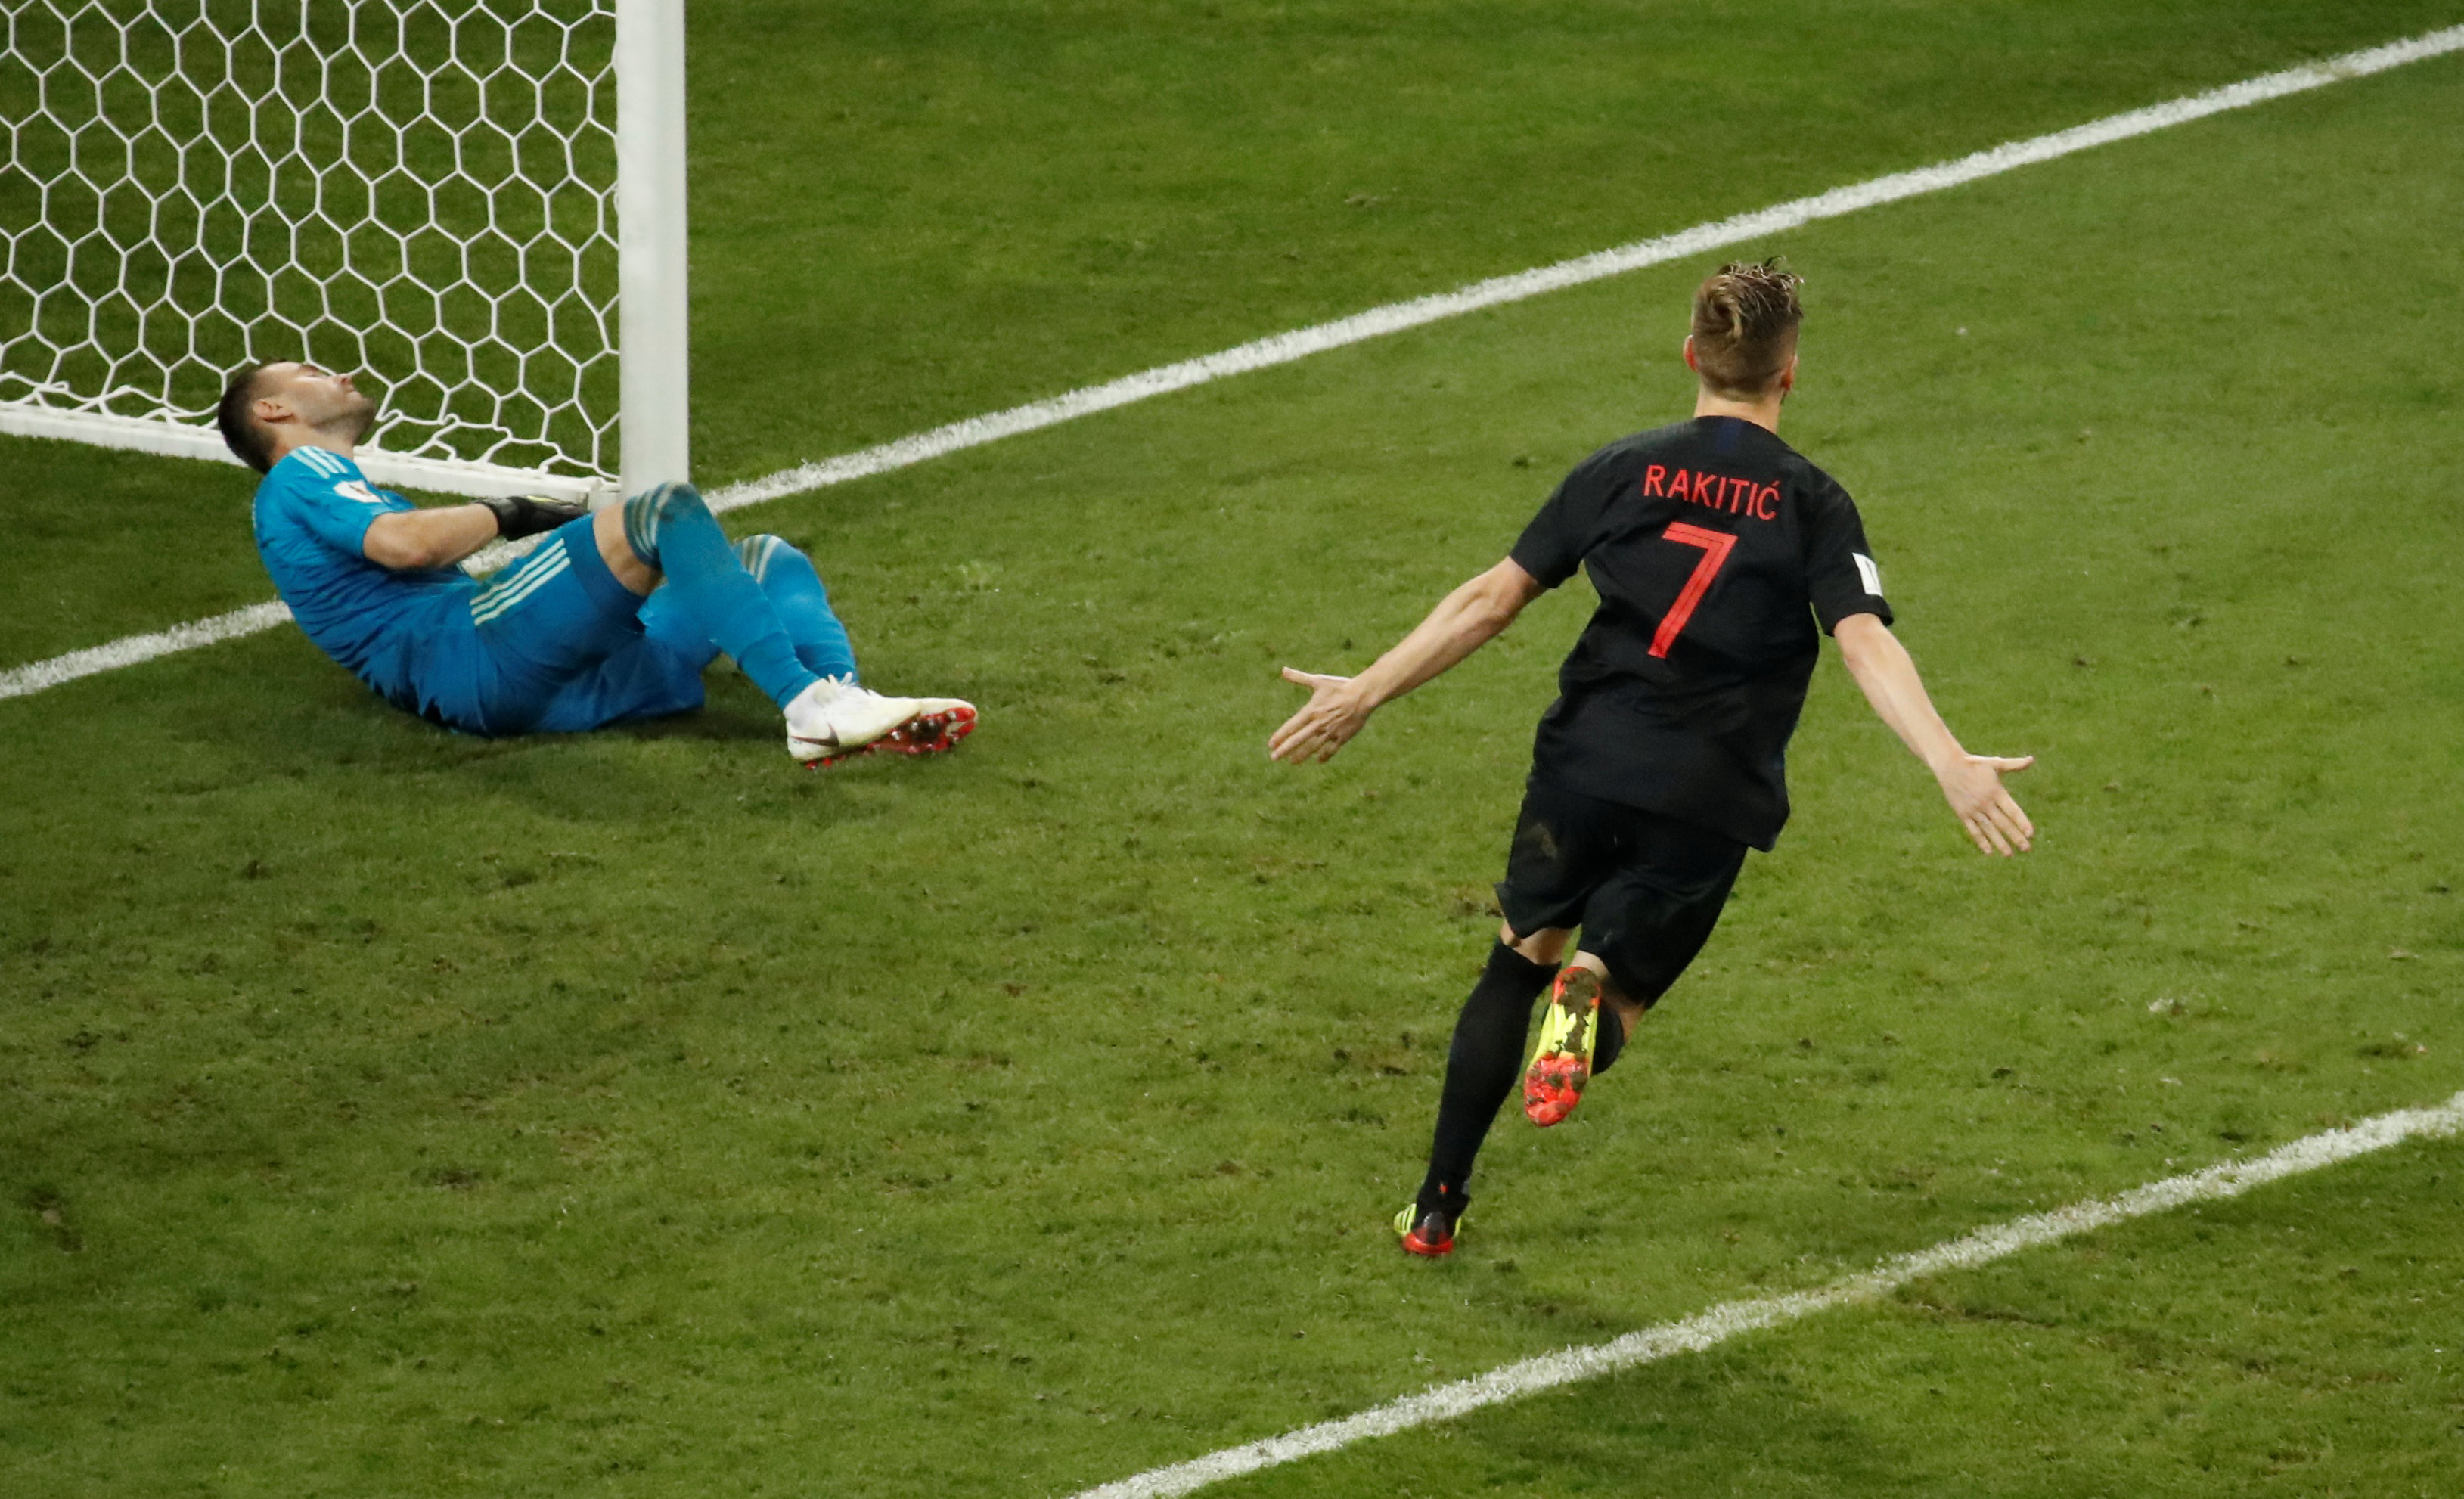 Croatia's Ivan Rakitic celebrates scoring the winning penalty in the shootout. Photo: Reuters